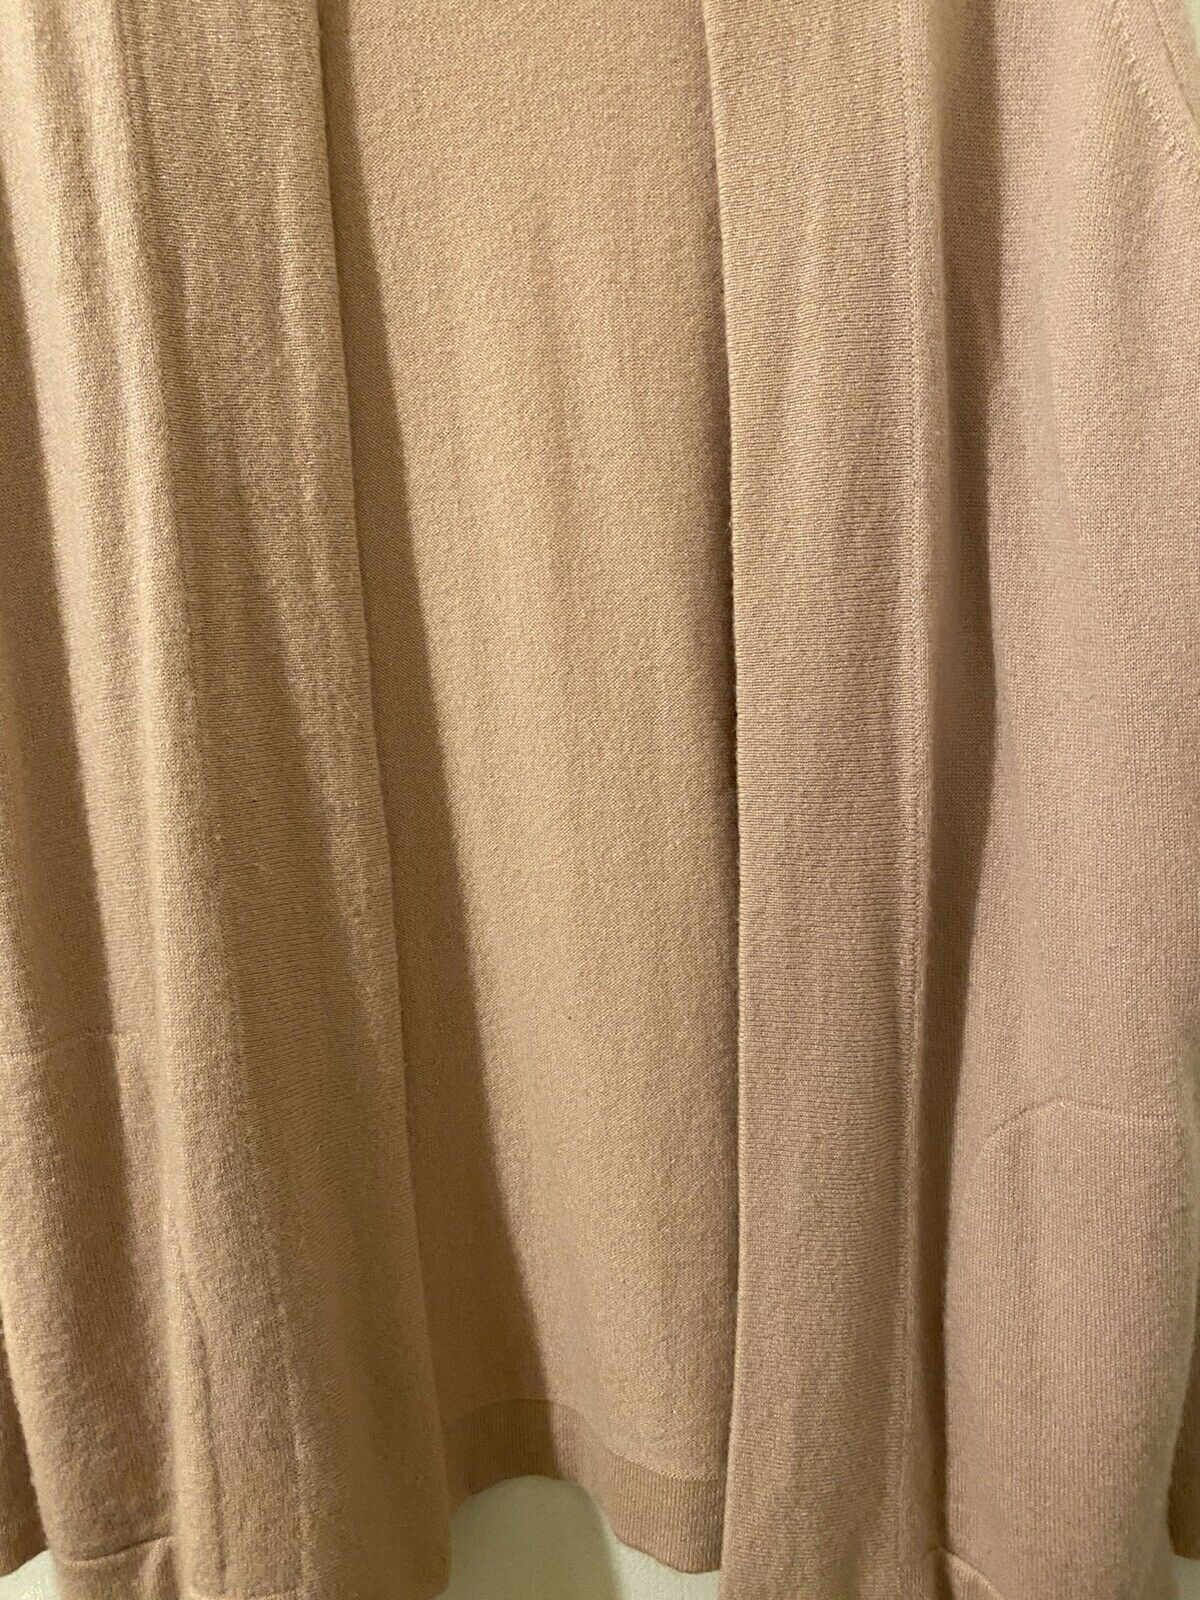 J. Crew Collection Cashmere Open Cardigan Size S … - image 3